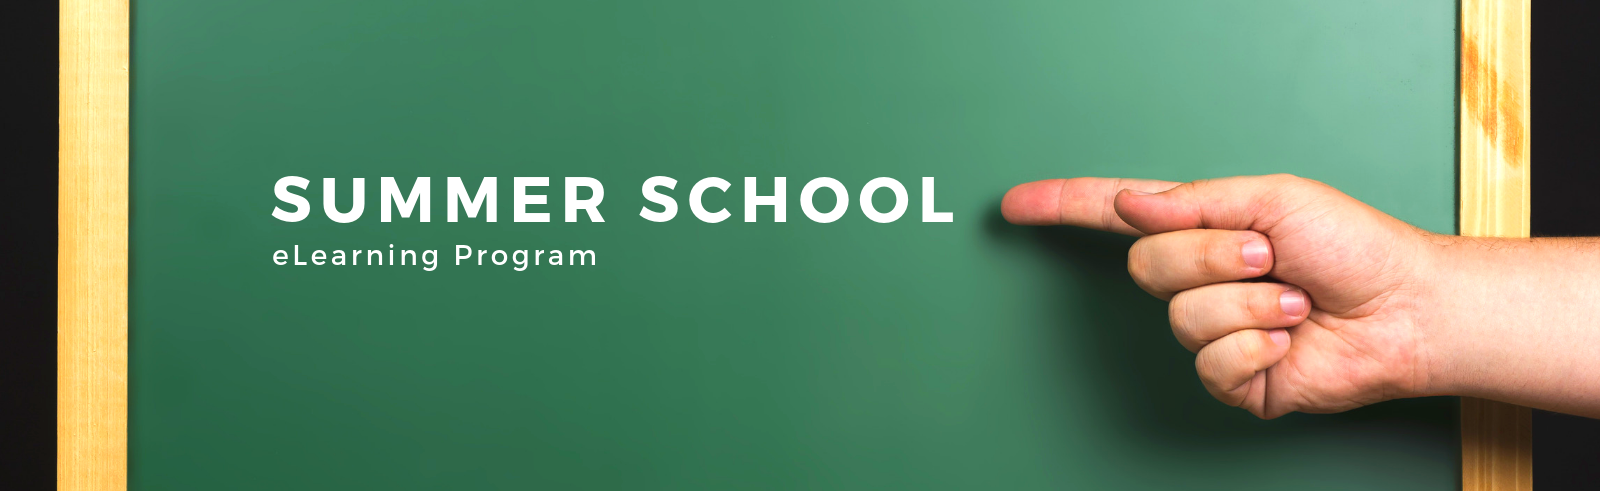 Summer School - eLearning Program Page Banner